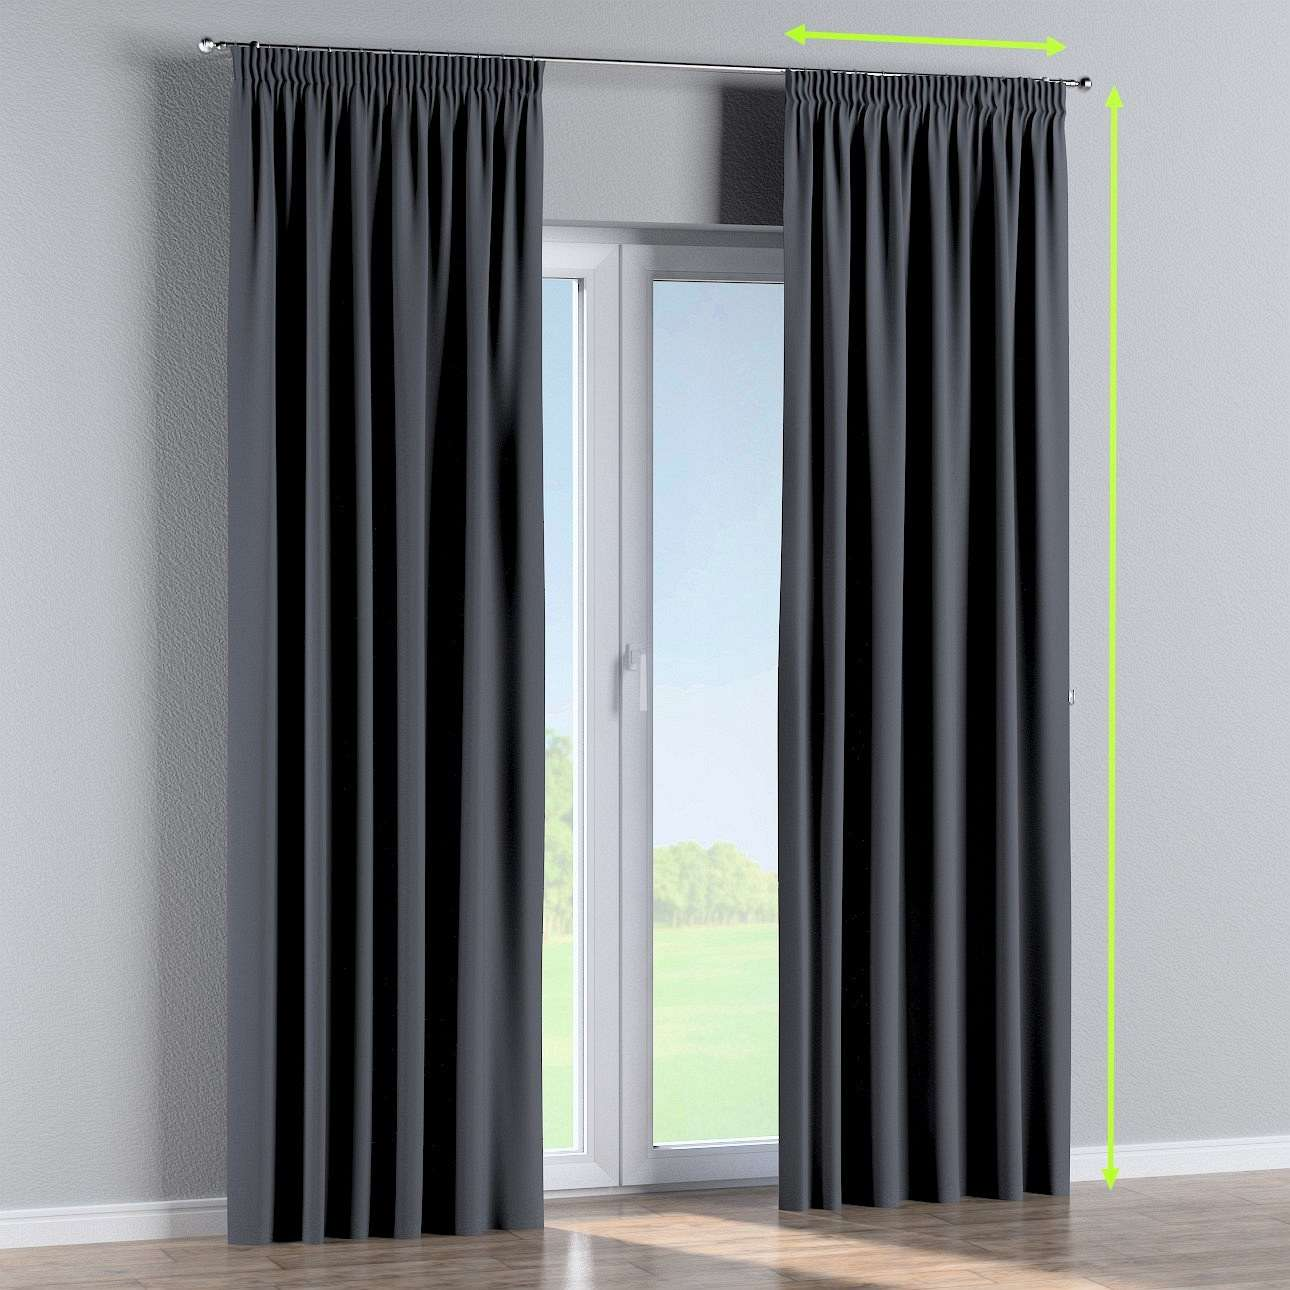 Blackout pencil pleat curtains in collection Blackout, fabric: 269-76